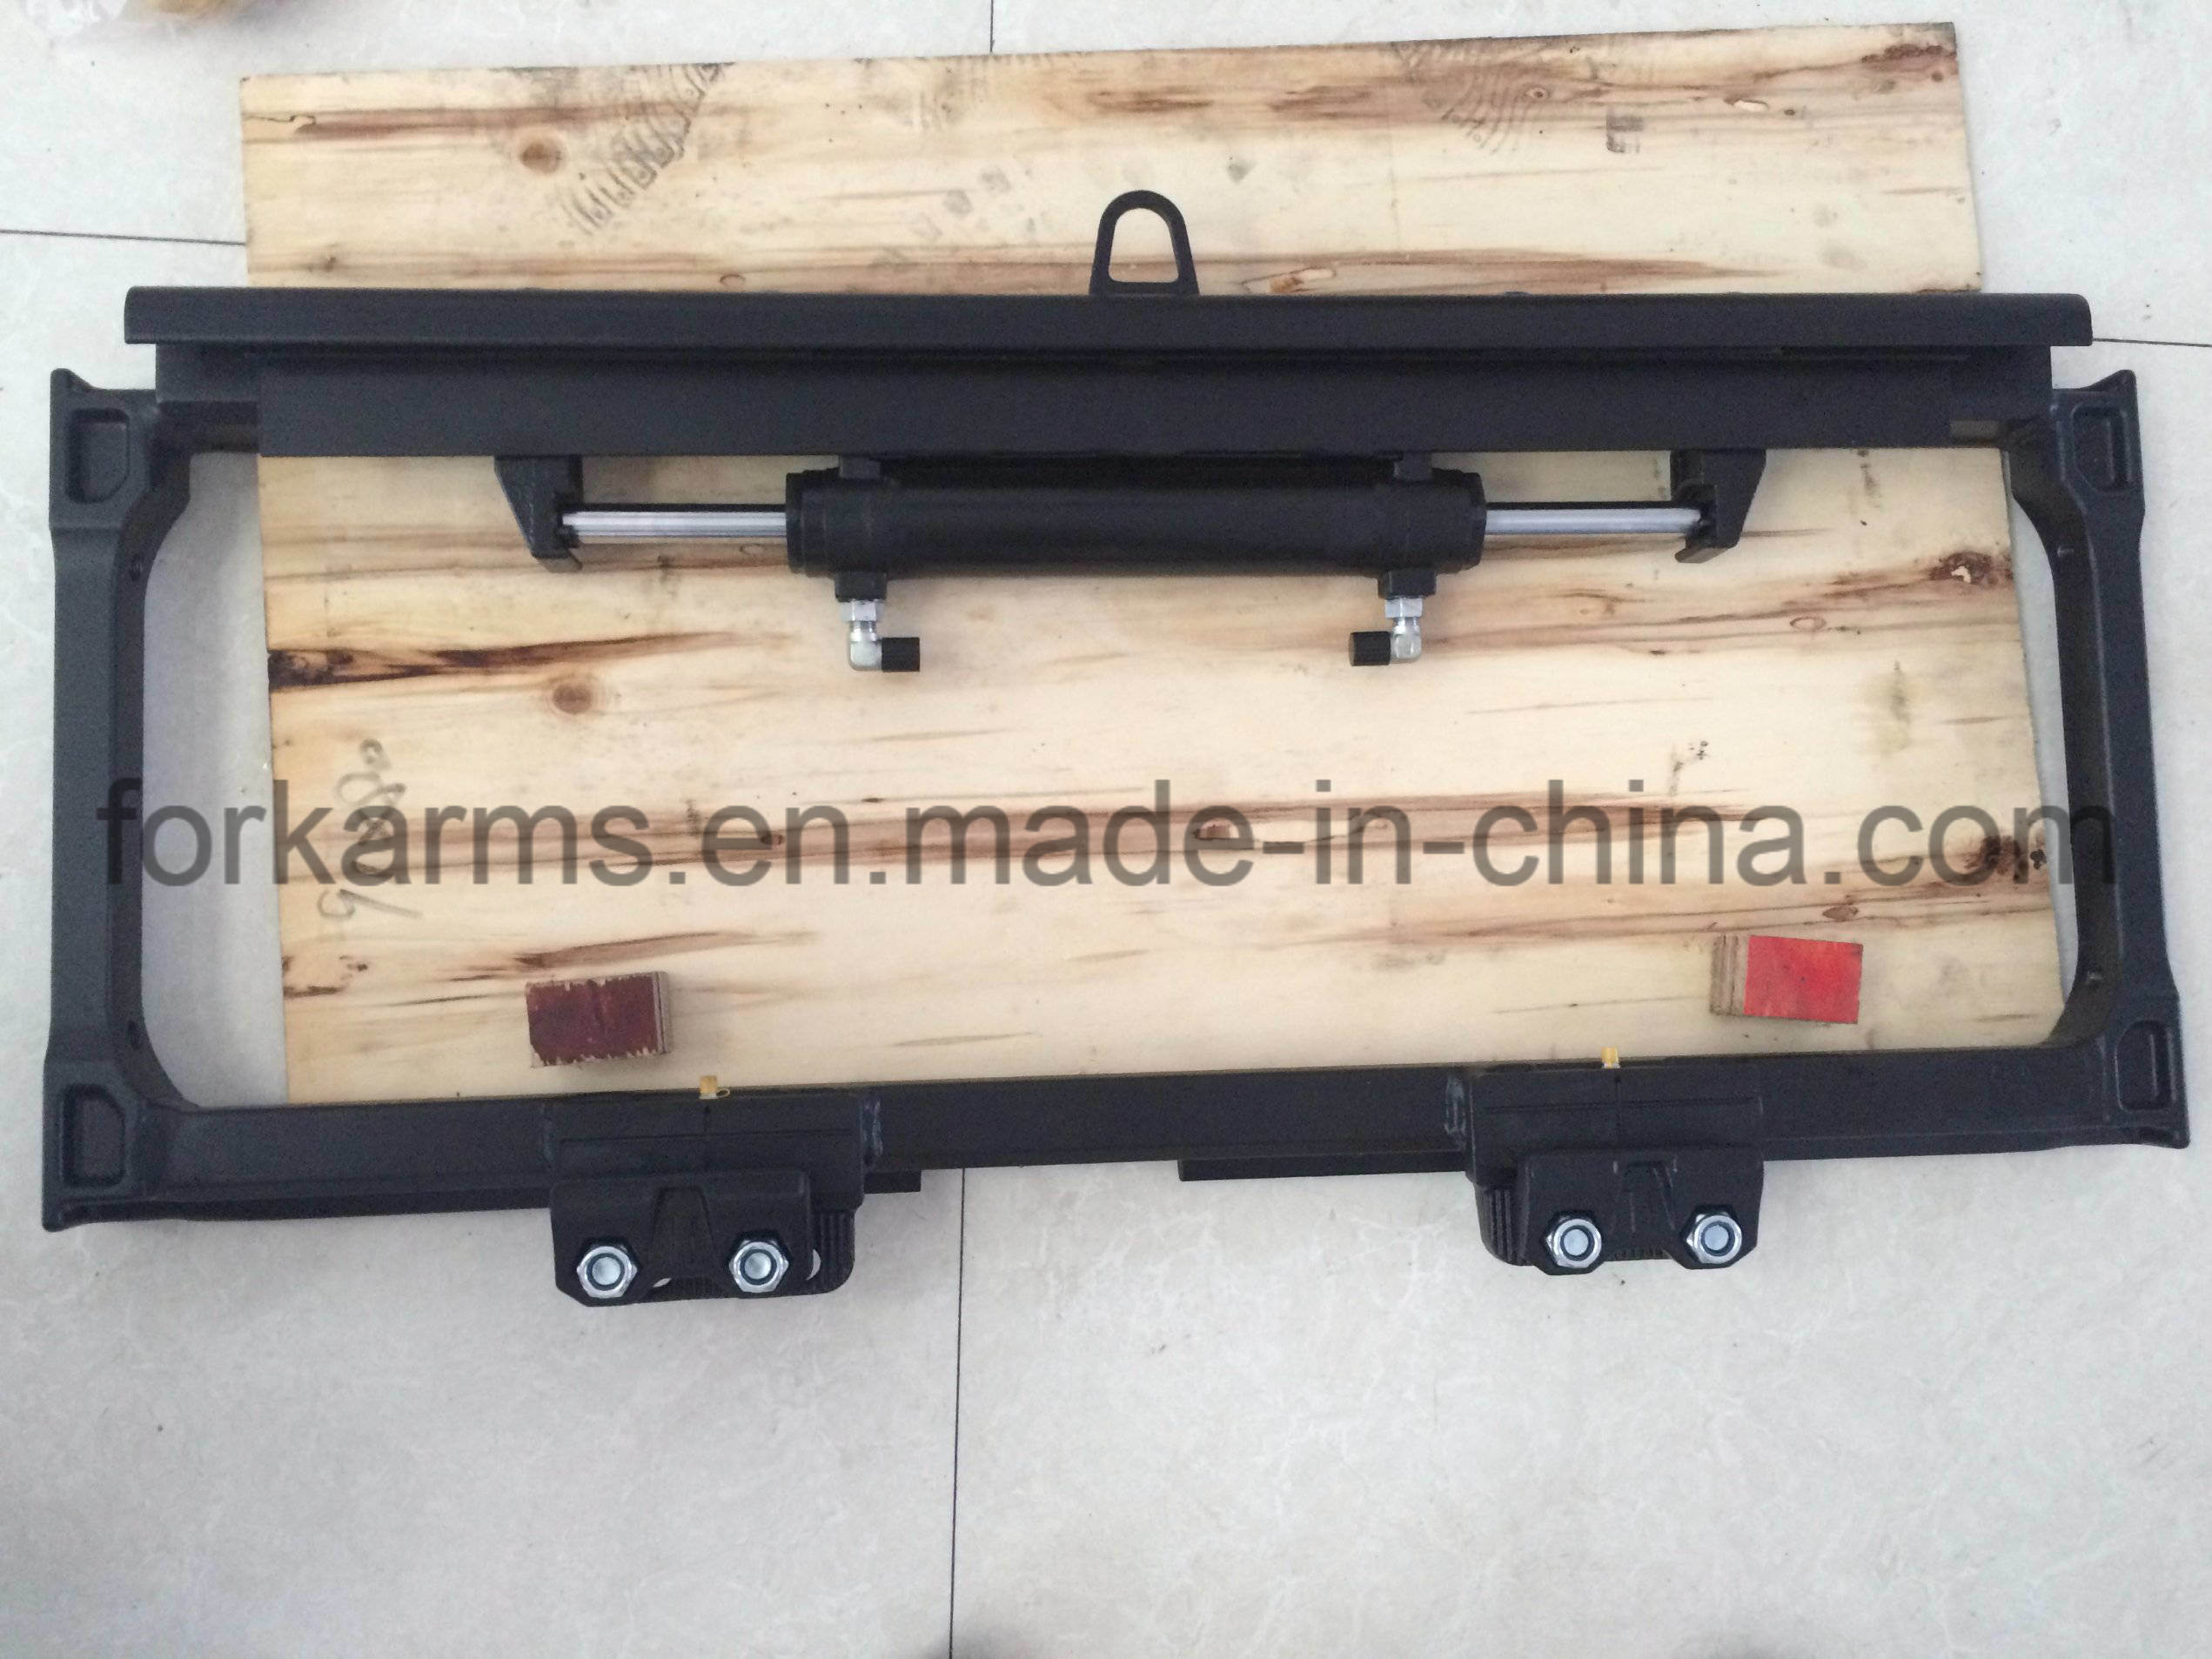 1-10 T Class II to IV Ce Sideshifter Forklift Attachment